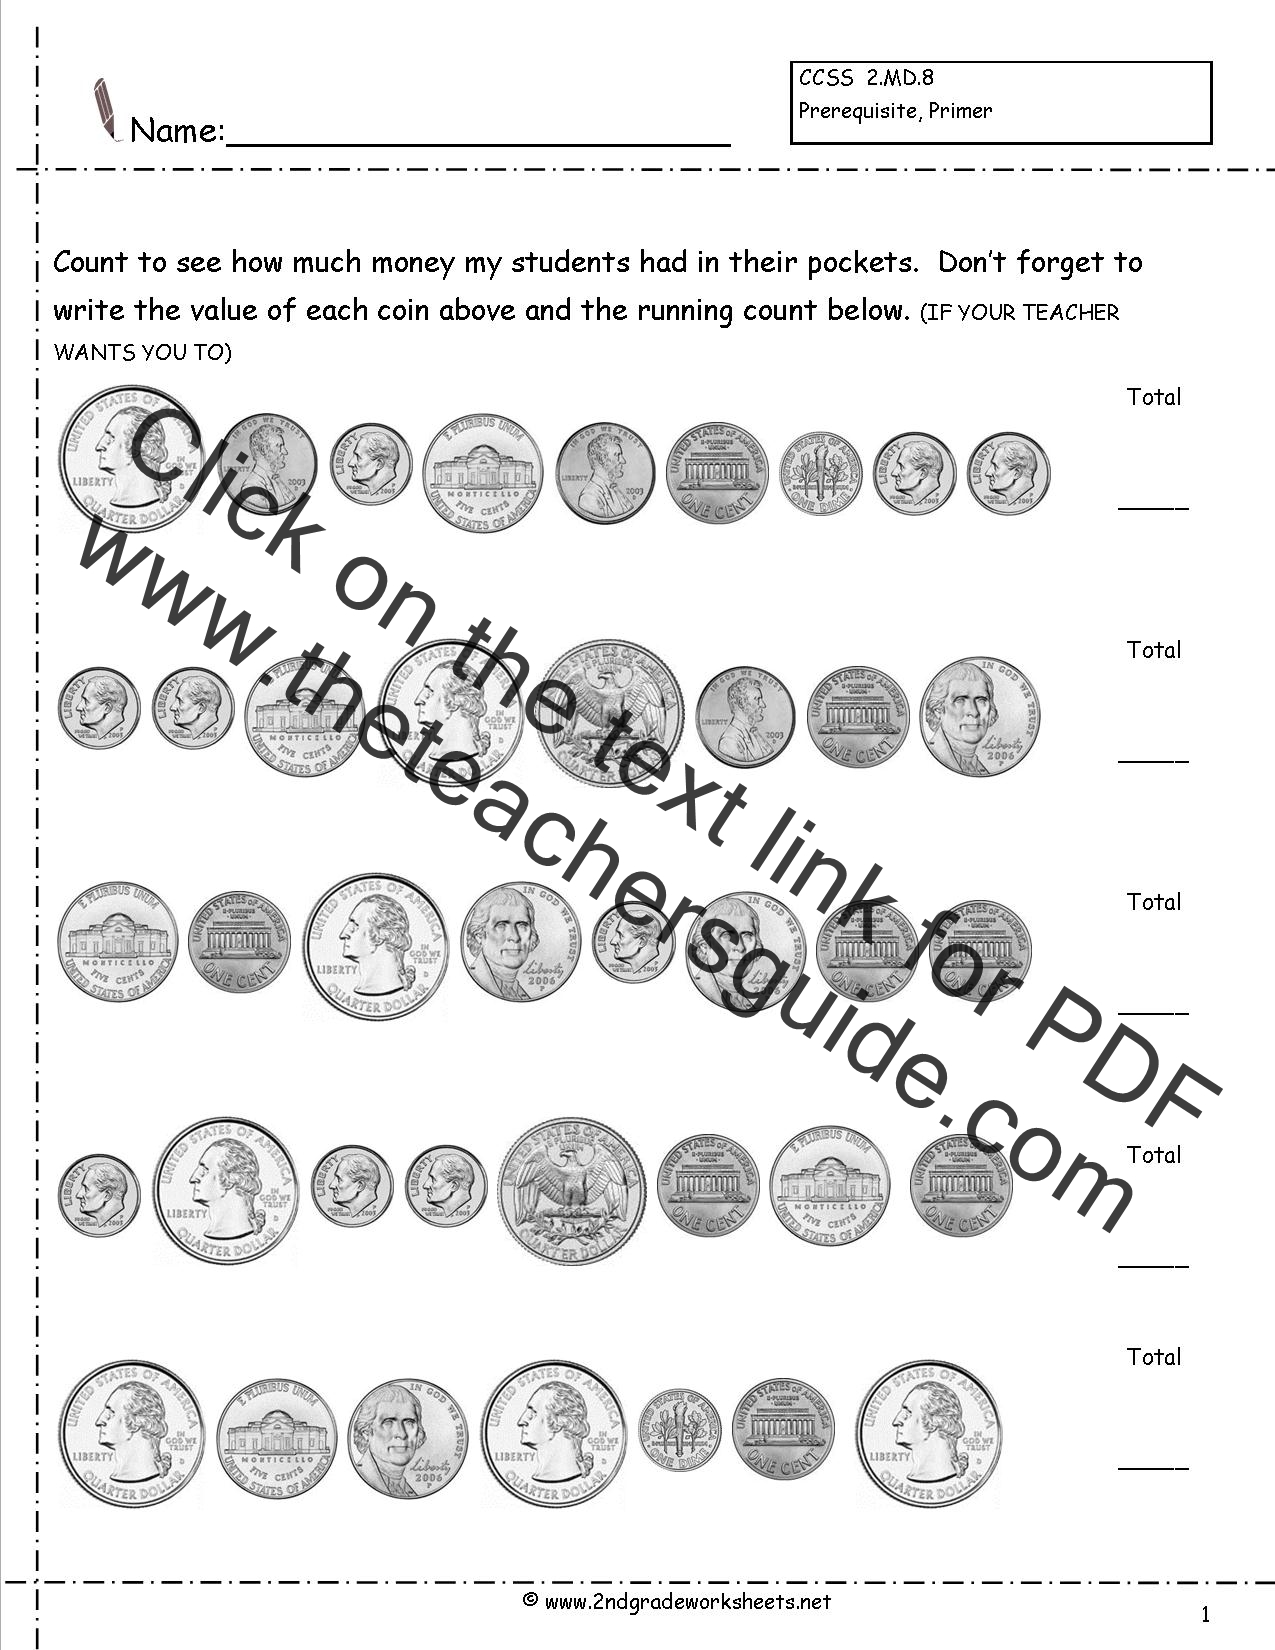 Worksheets Coin Counting Worksheets counting coins and money worksheets printouts worksheets